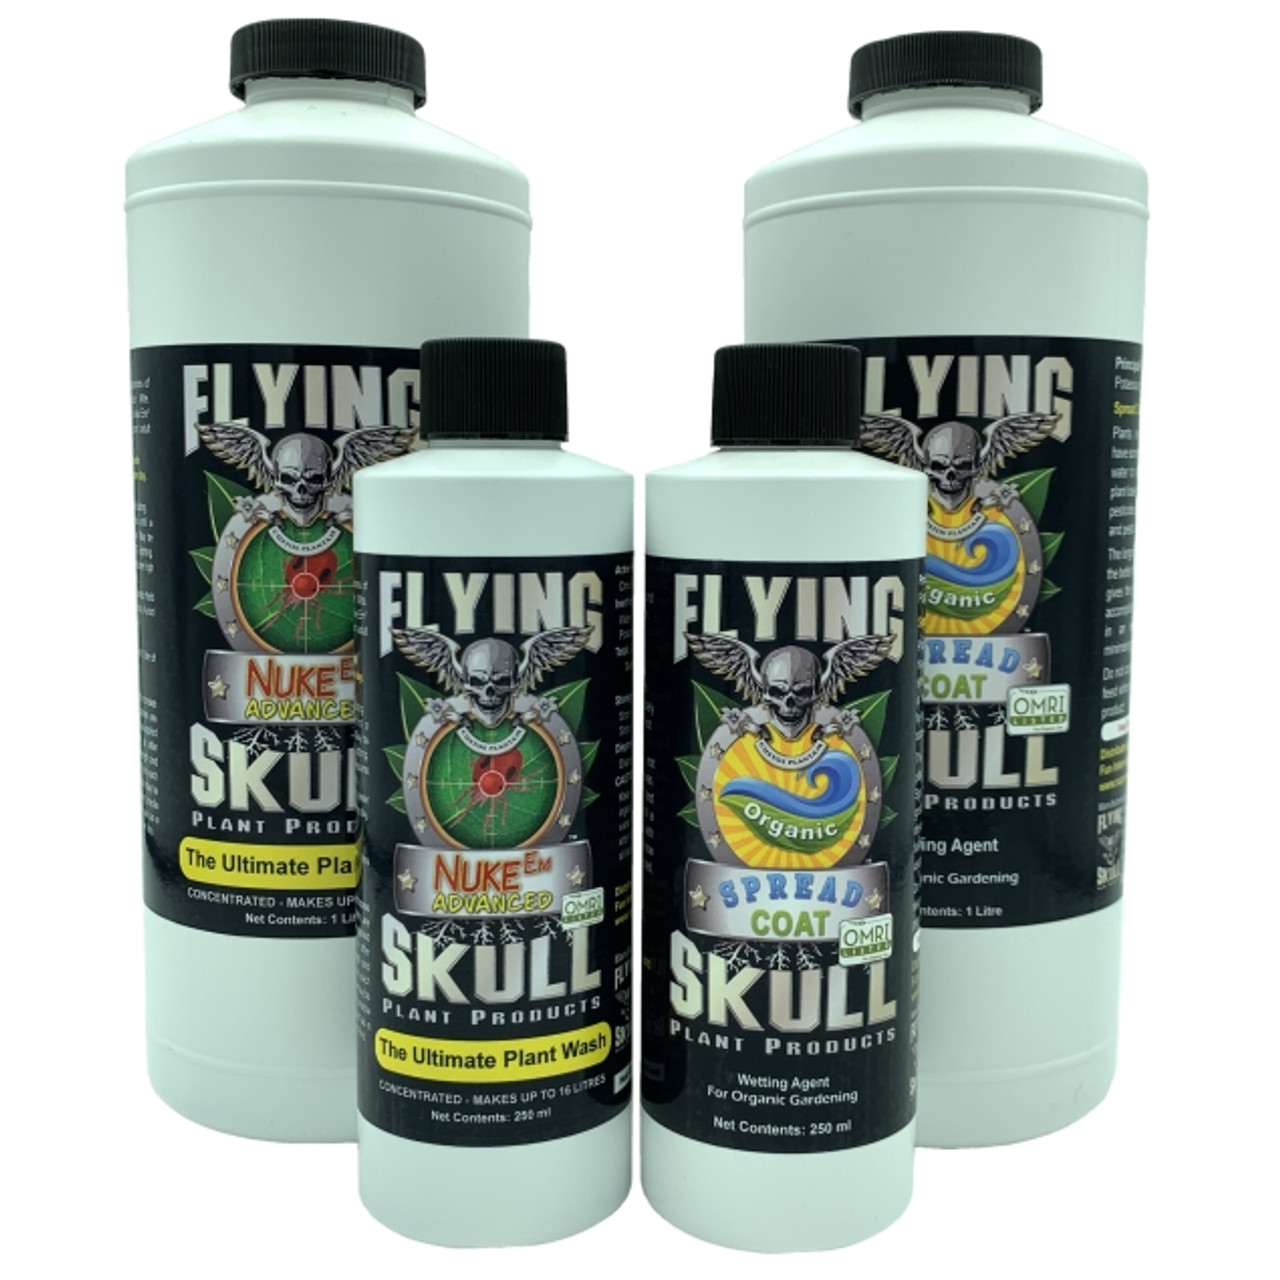 Flying Skull Nuke Em Advanced and Spread Coat Products